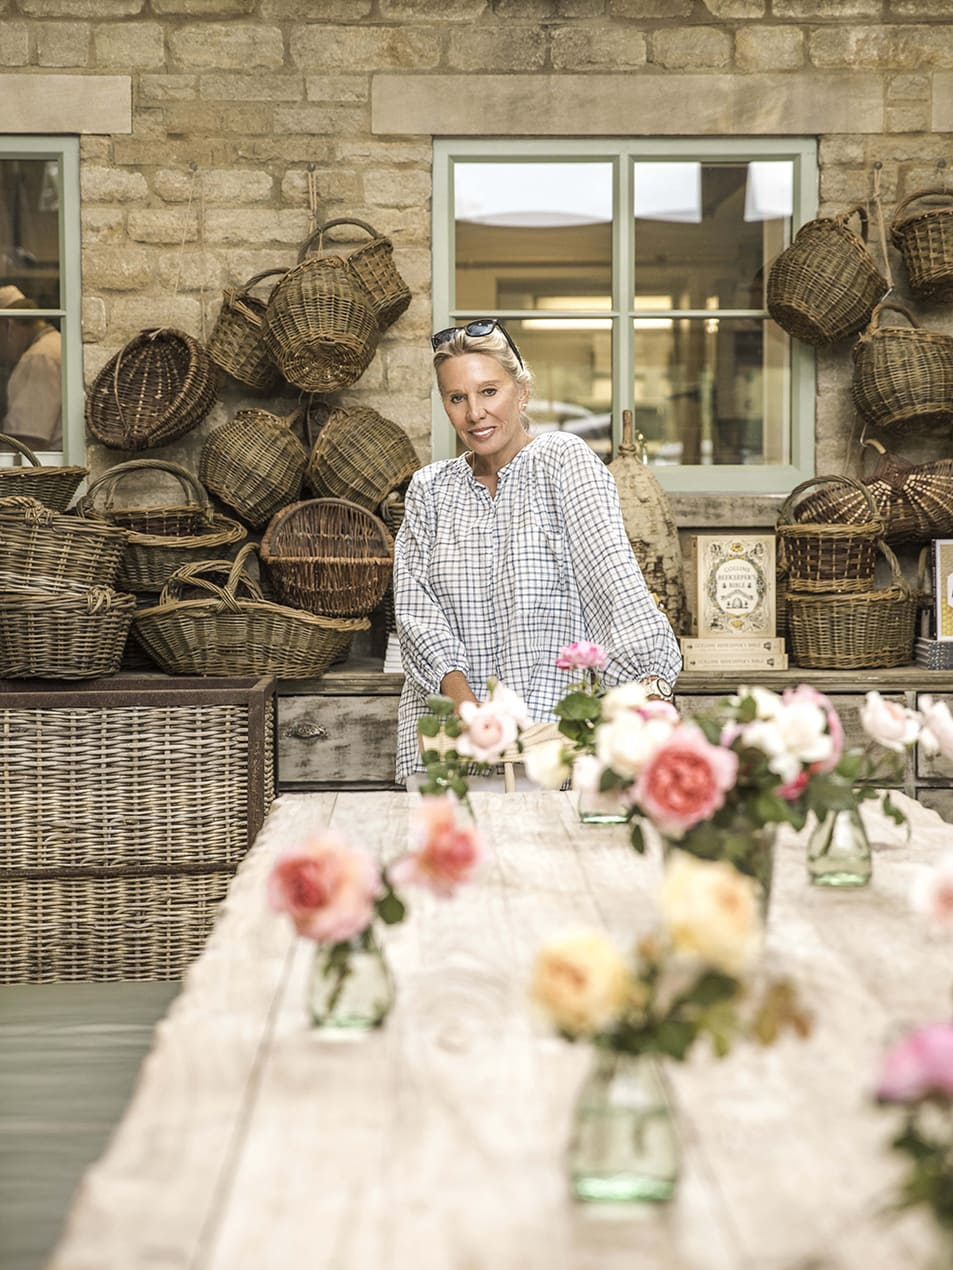 Lessons from the Daylesford Organic pioneering founder Lady Bamford